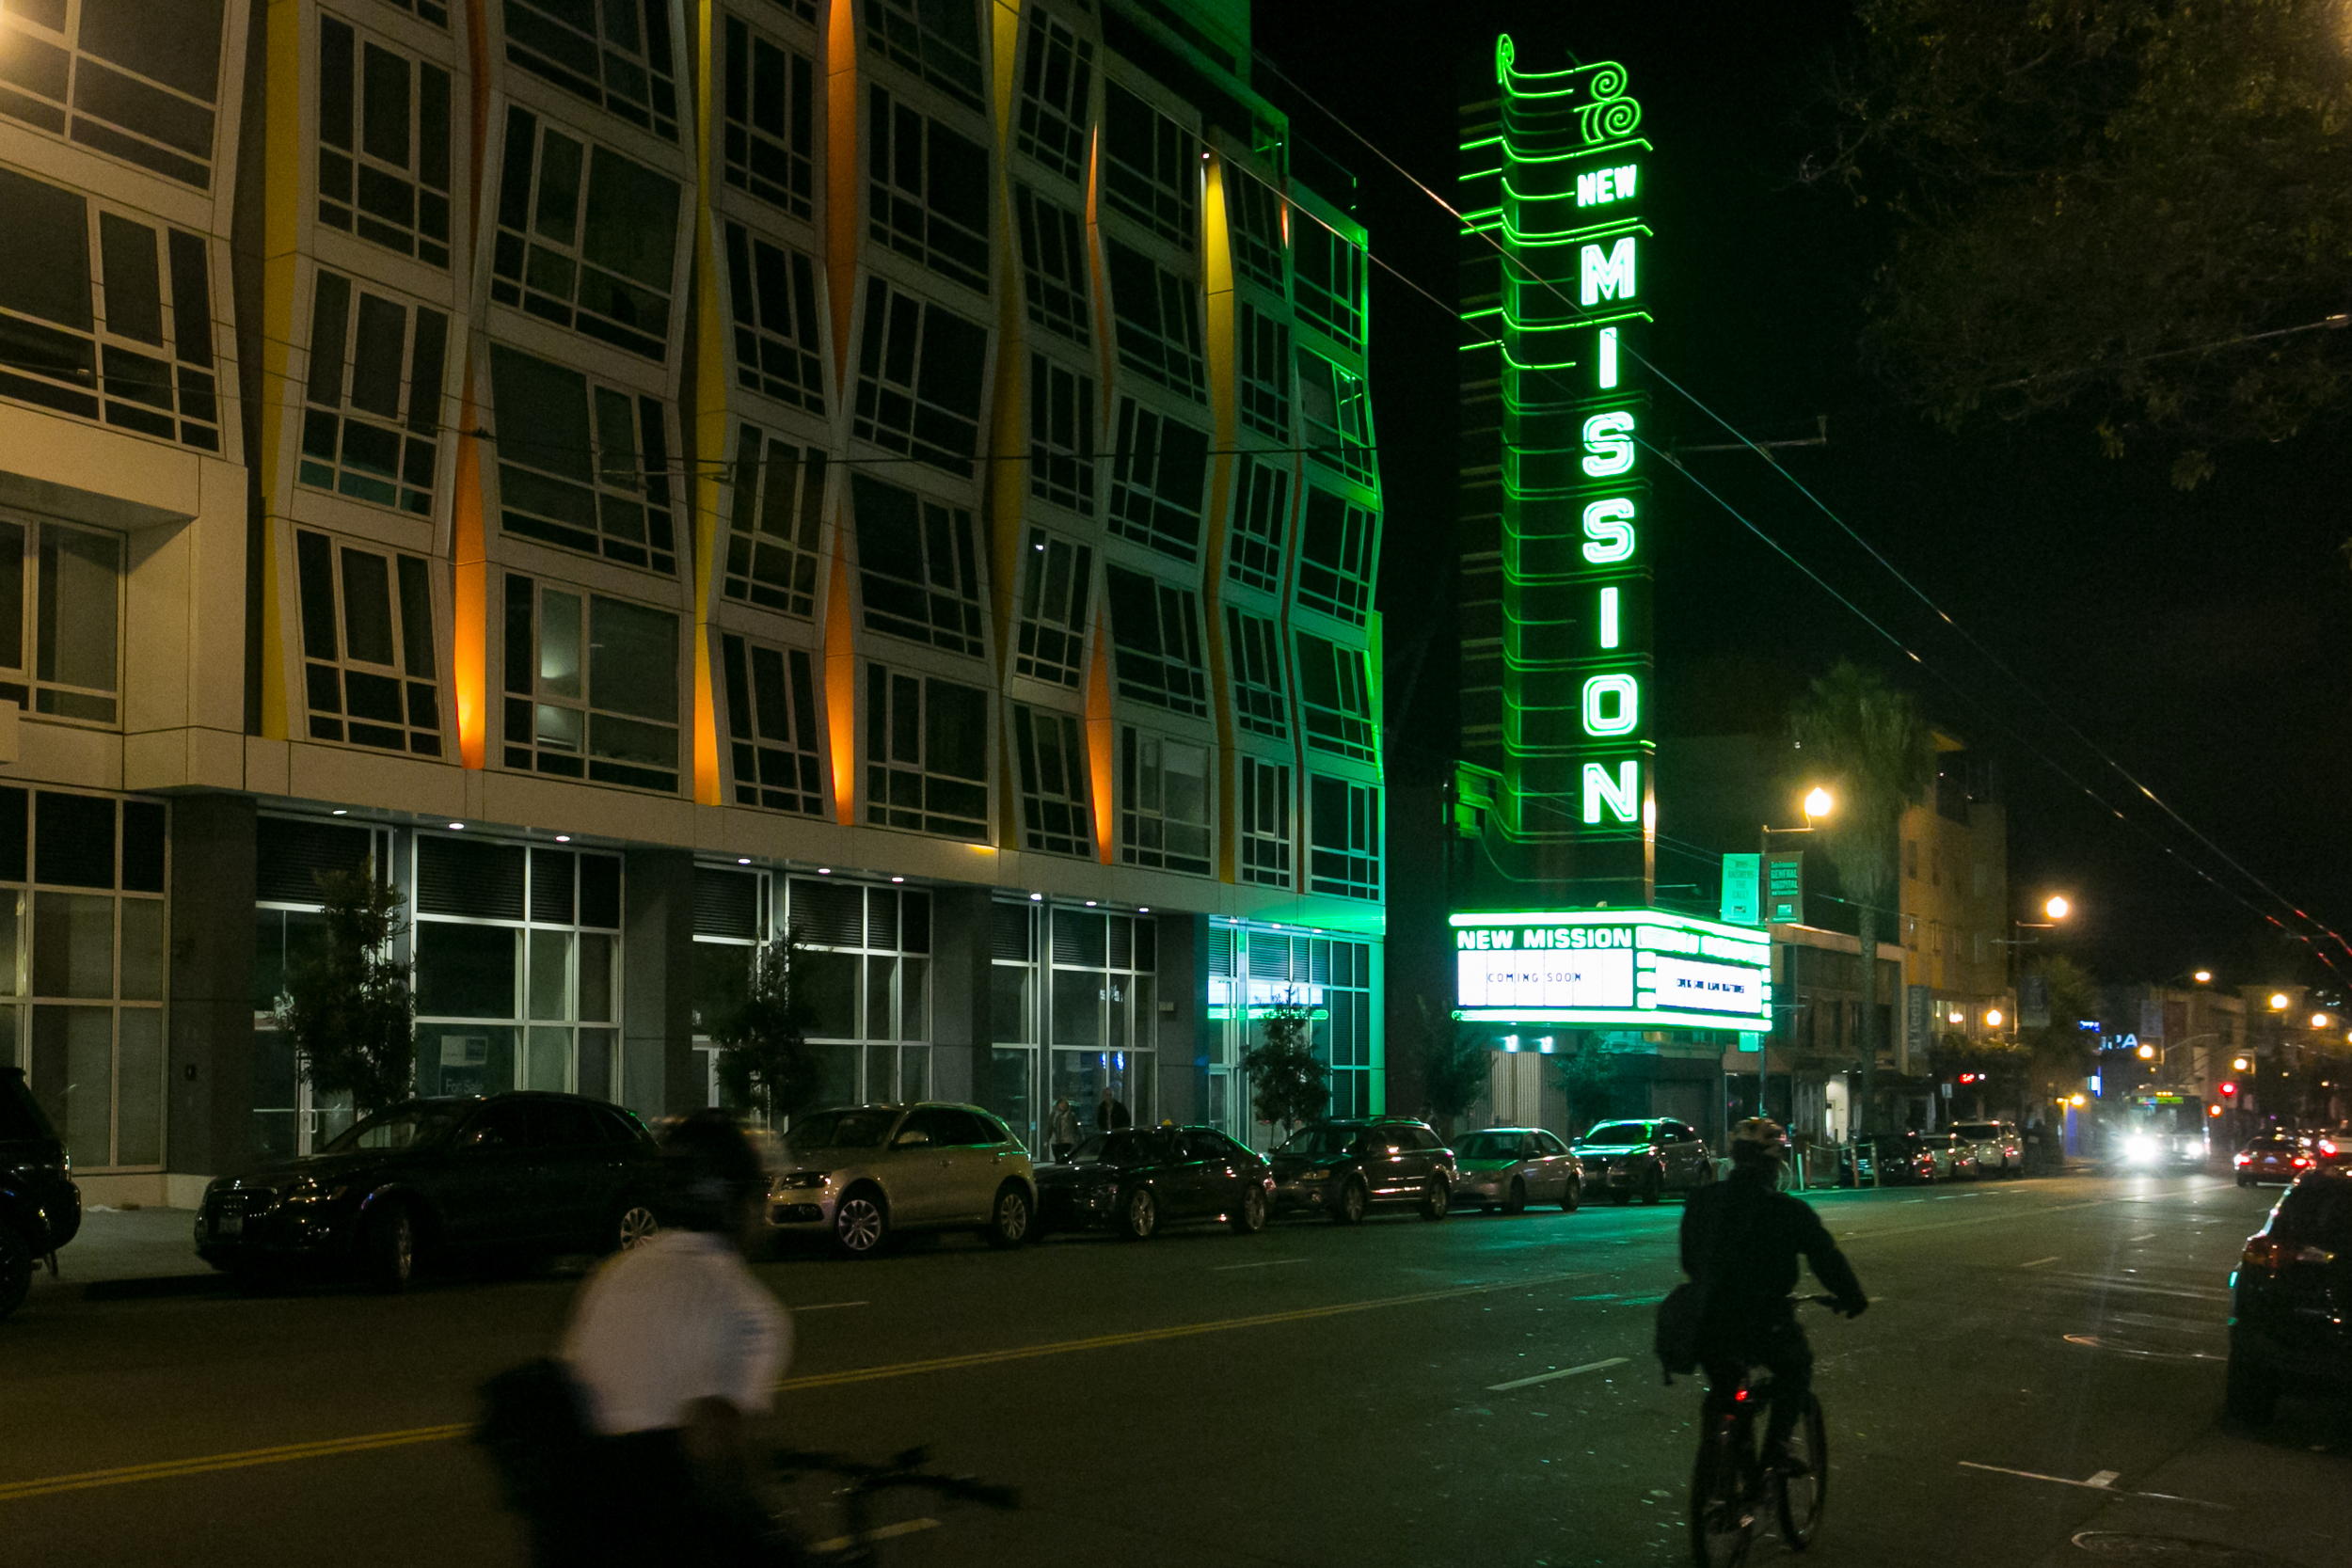 03903901-The Mission-Mission St-The New Mission.jpg